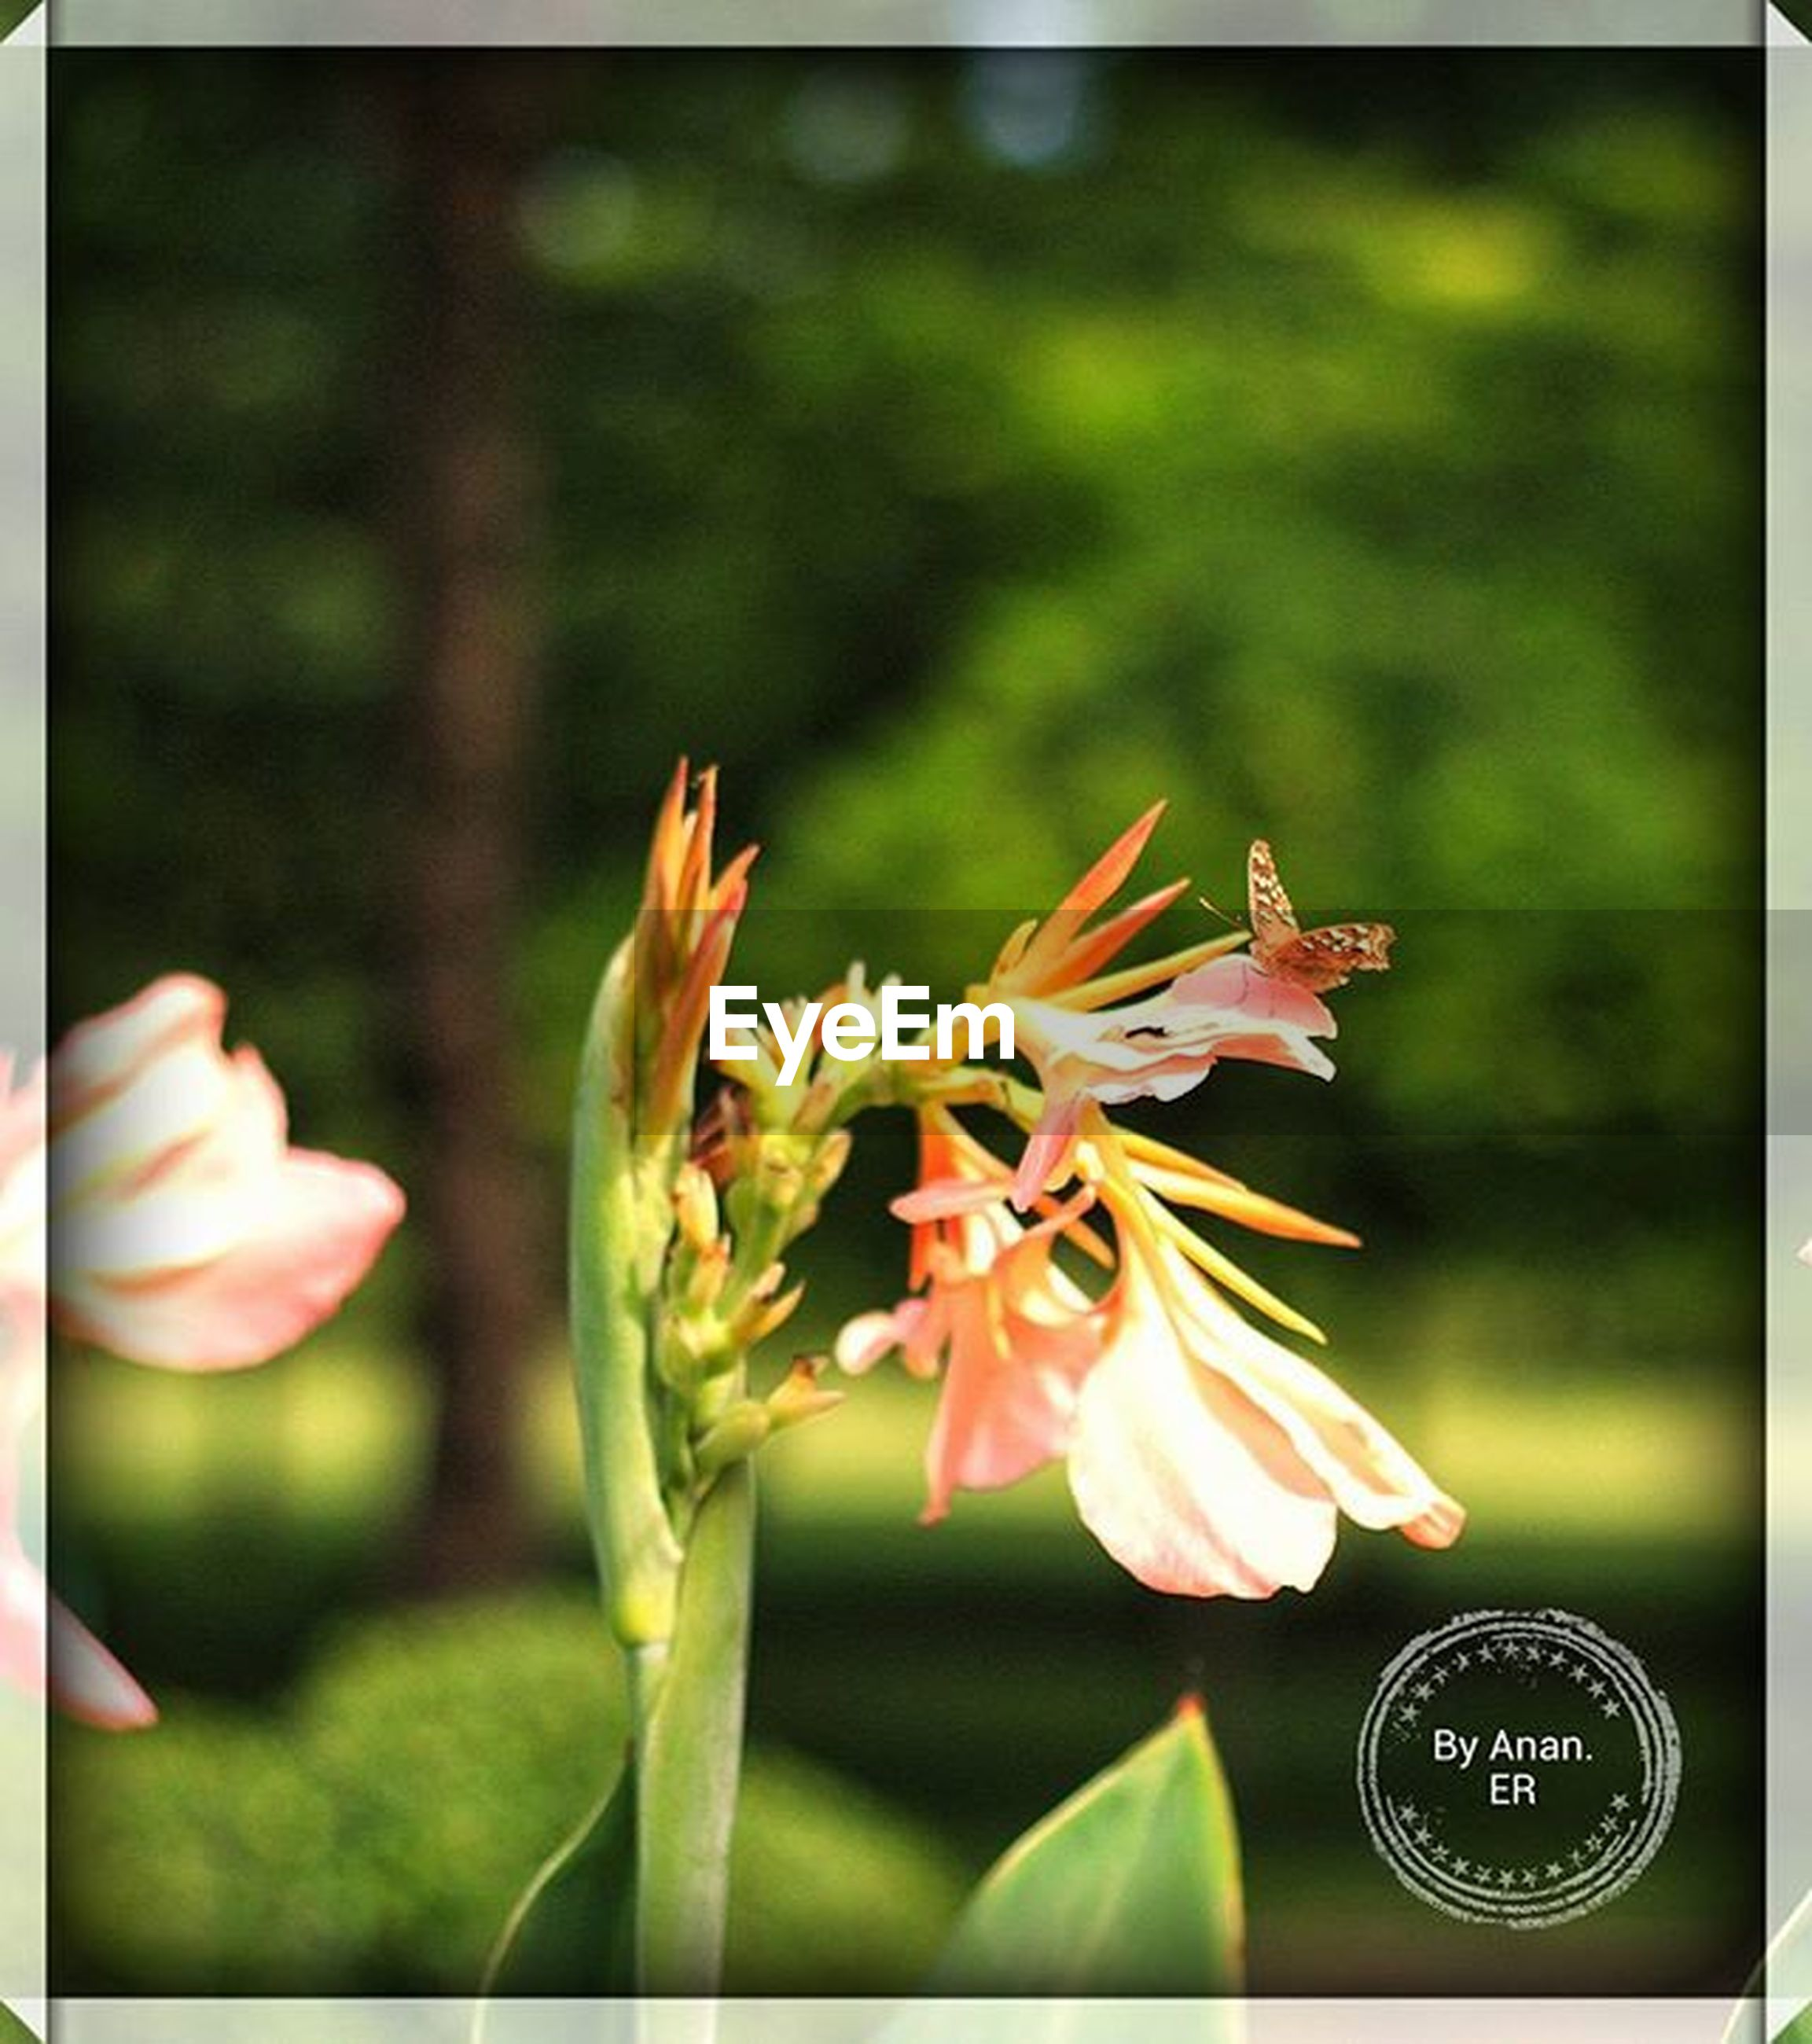 flower, focus on foreground, freshness, petal, close-up, fragility, flower head, growth, transfer print, beauty in nature, plant, nature, stem, bud, auto post production filter, blooming, selective focus, single flower, leaf, day